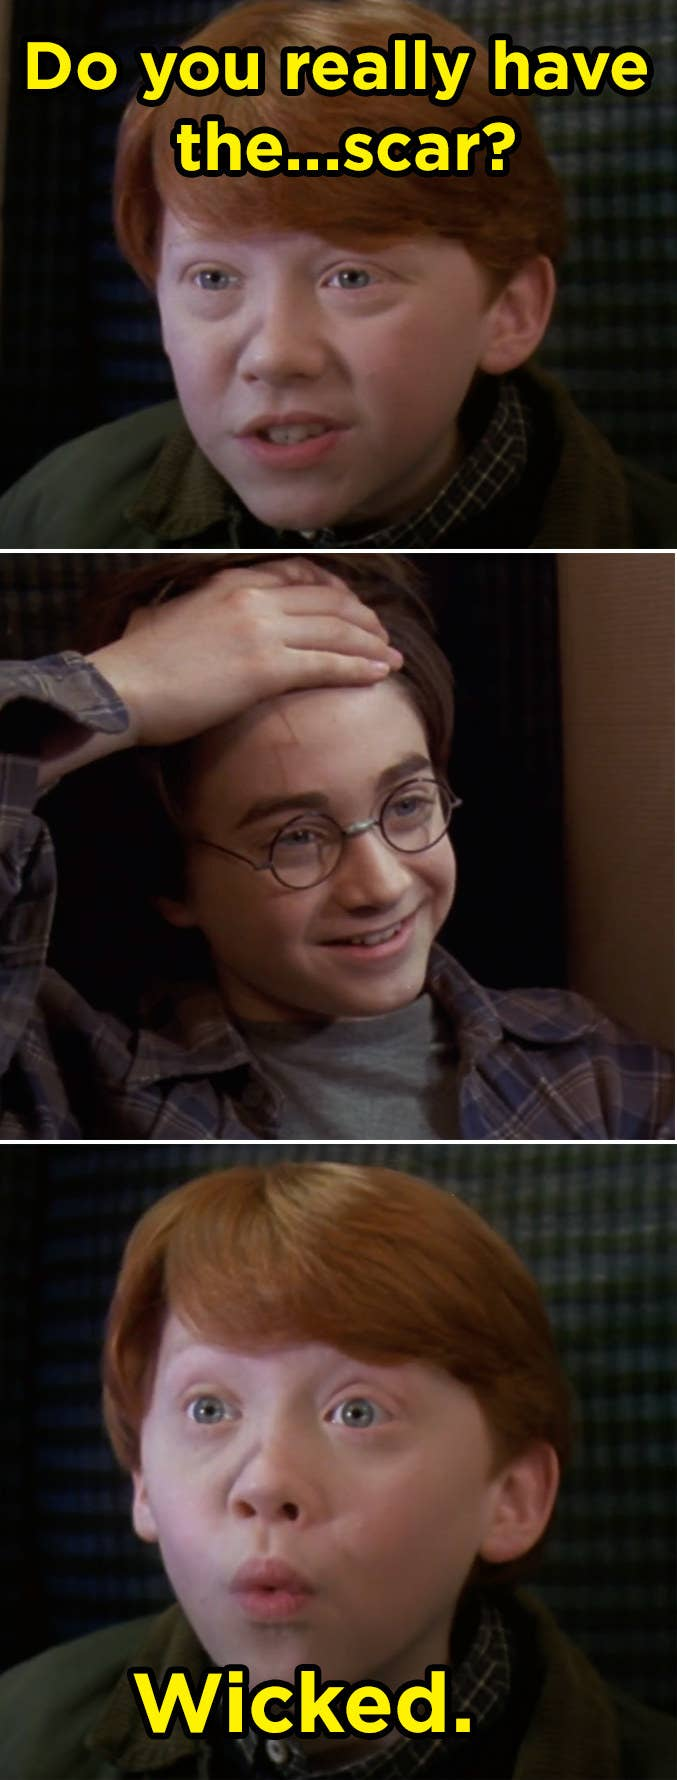 """while sitting in a train car, a young boy with wavy hair says """"do you really have the scar?"""" and the other boy shows him the scar on his forehead, in the shape of a lightning bolt. the original boy says """"wicked,"""" with his eyes wide."""